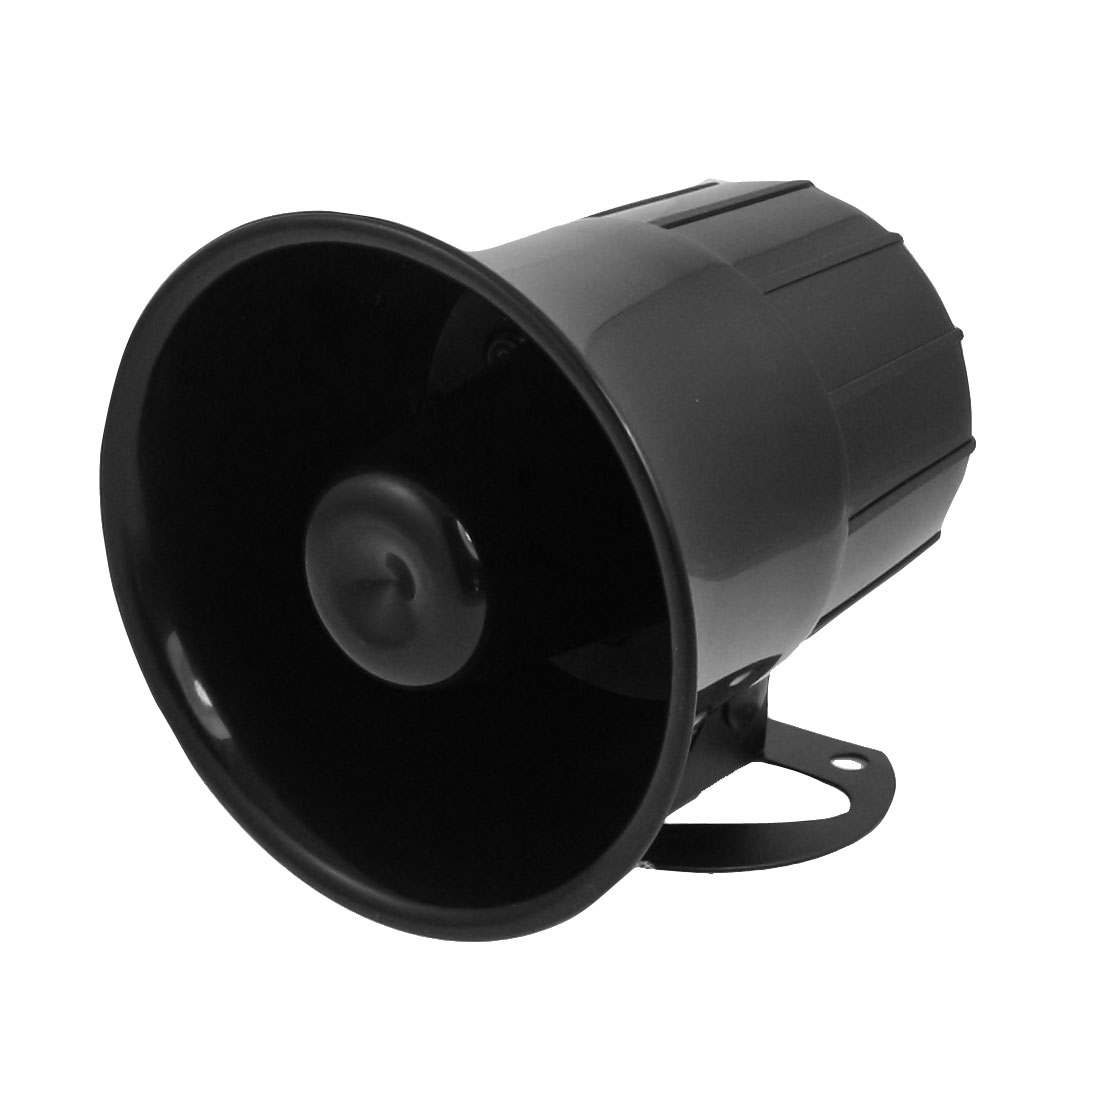 110dB DC 12V Security System Buzzer Siren Horn for Truck Car